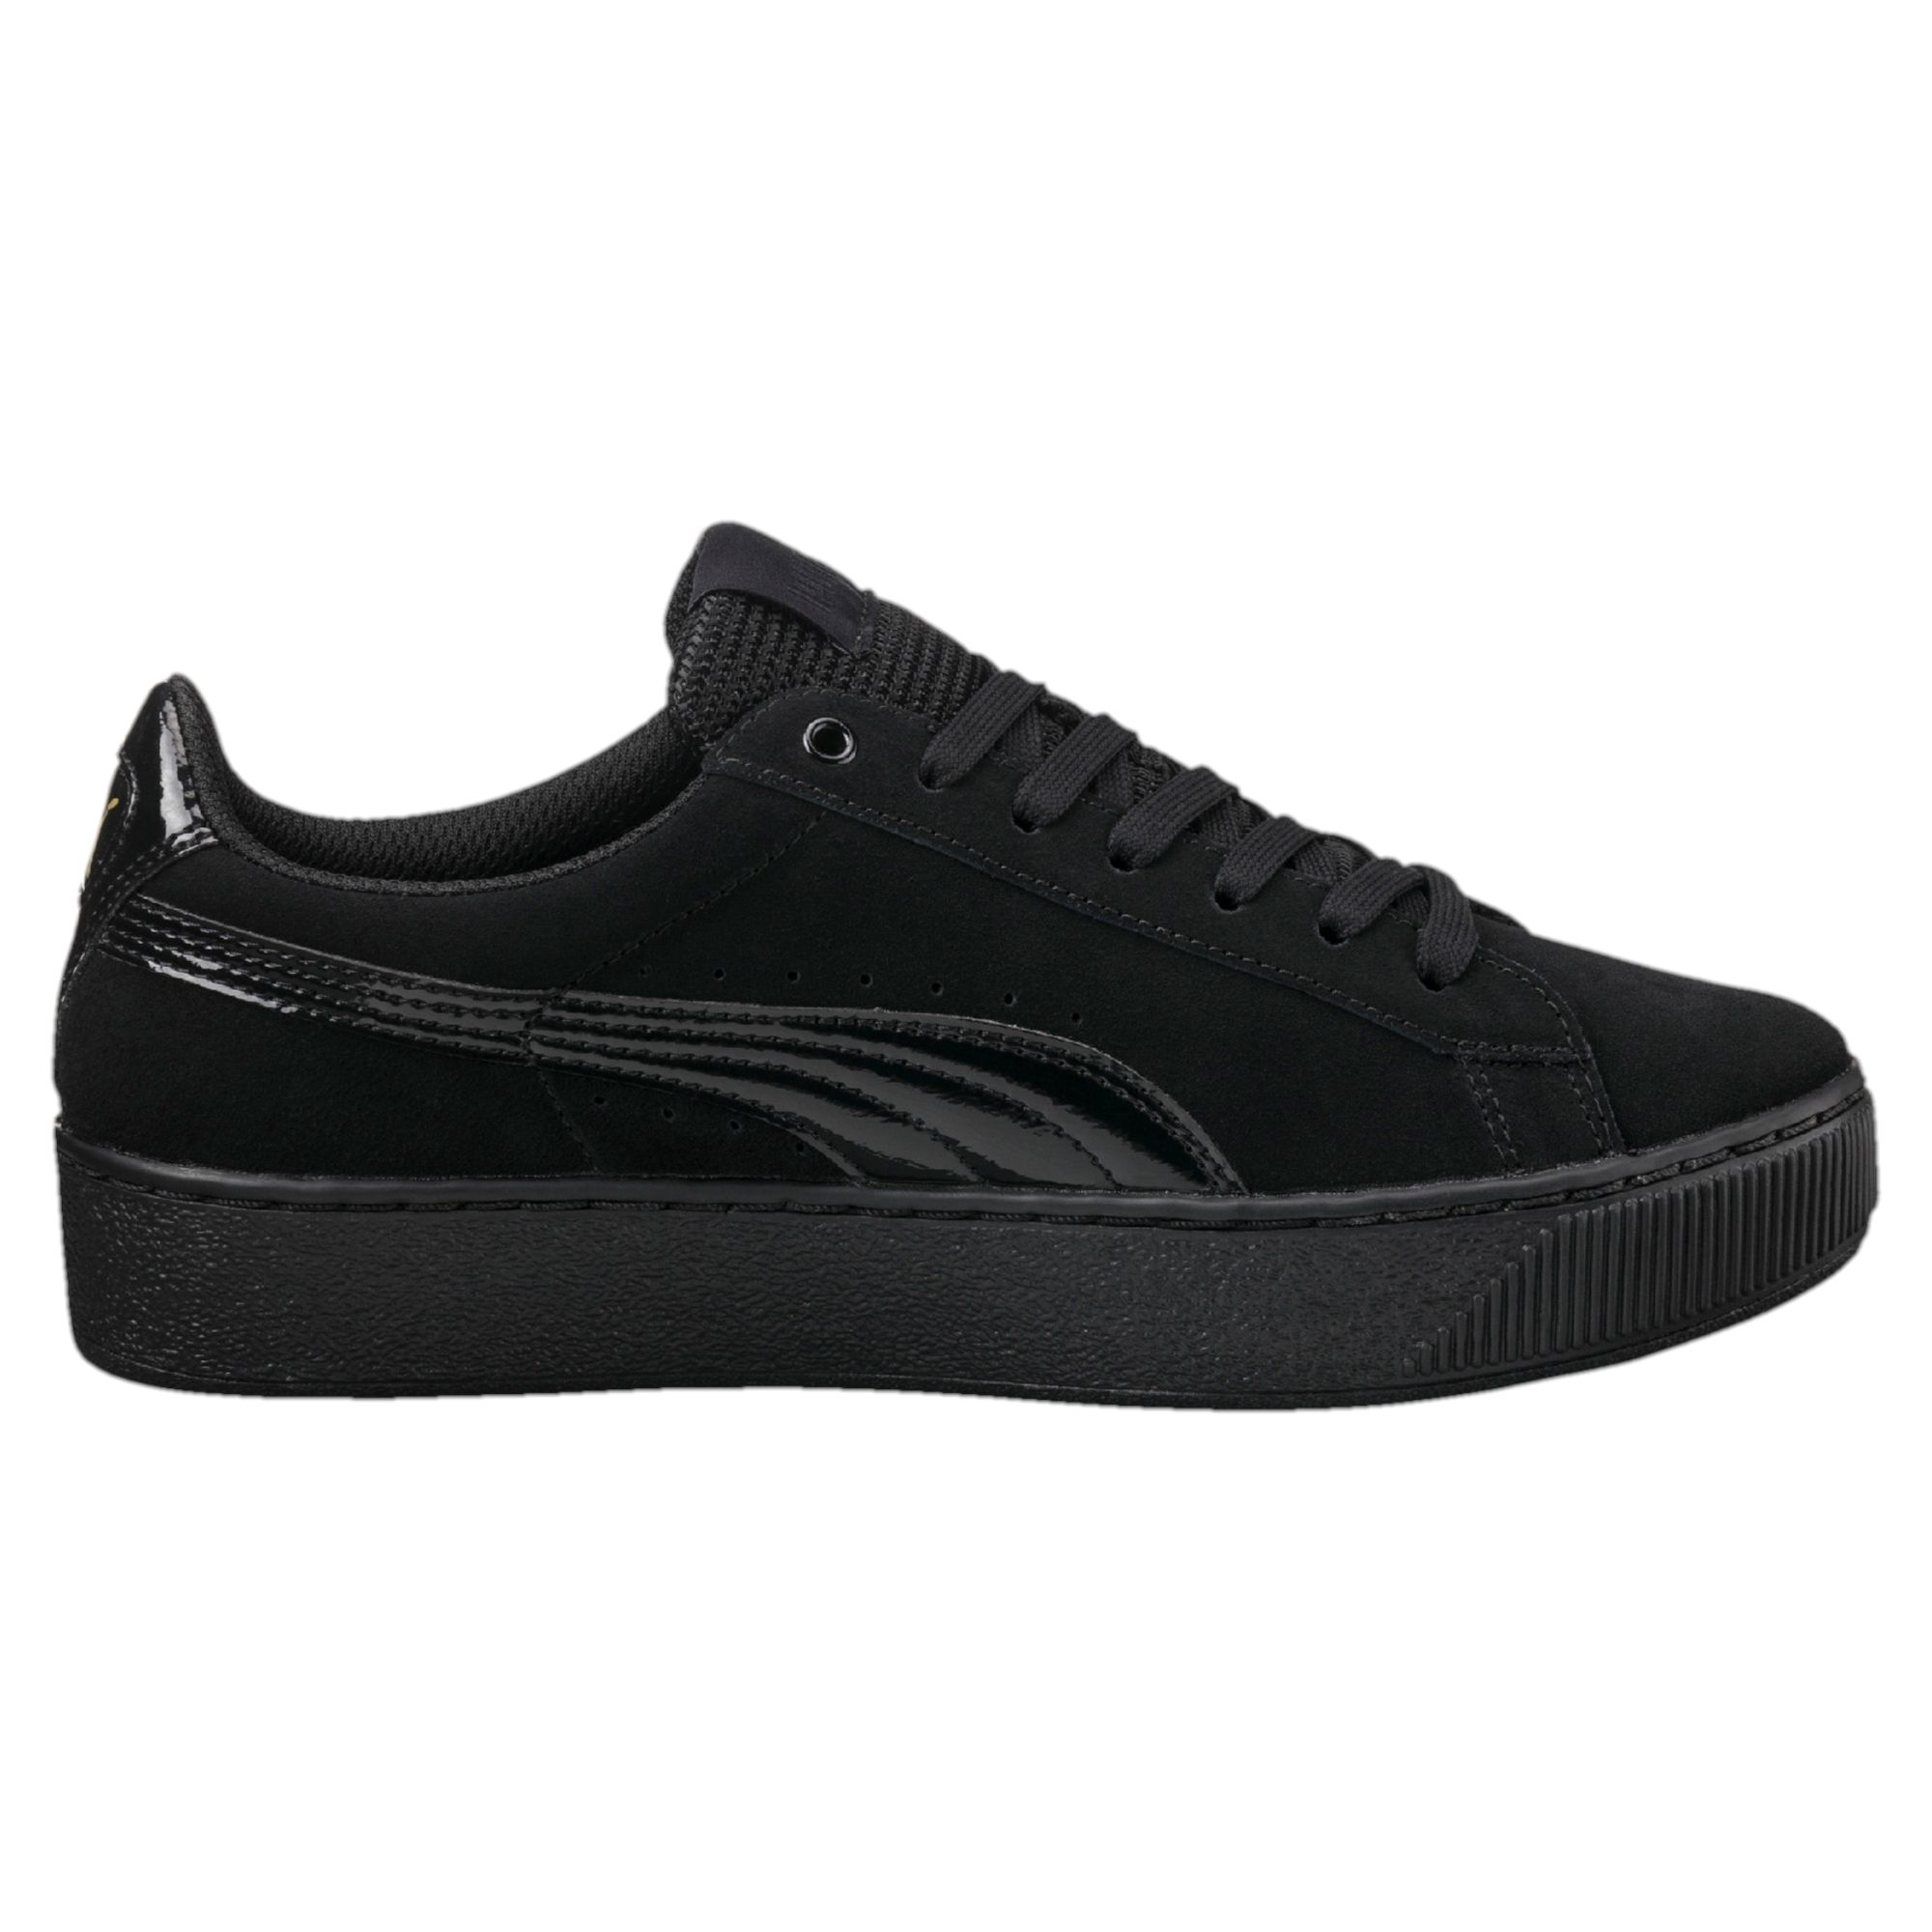 puma vikky platform damen sneaker basics schuhe frauen neu. Black Bedroom Furniture Sets. Home Design Ideas